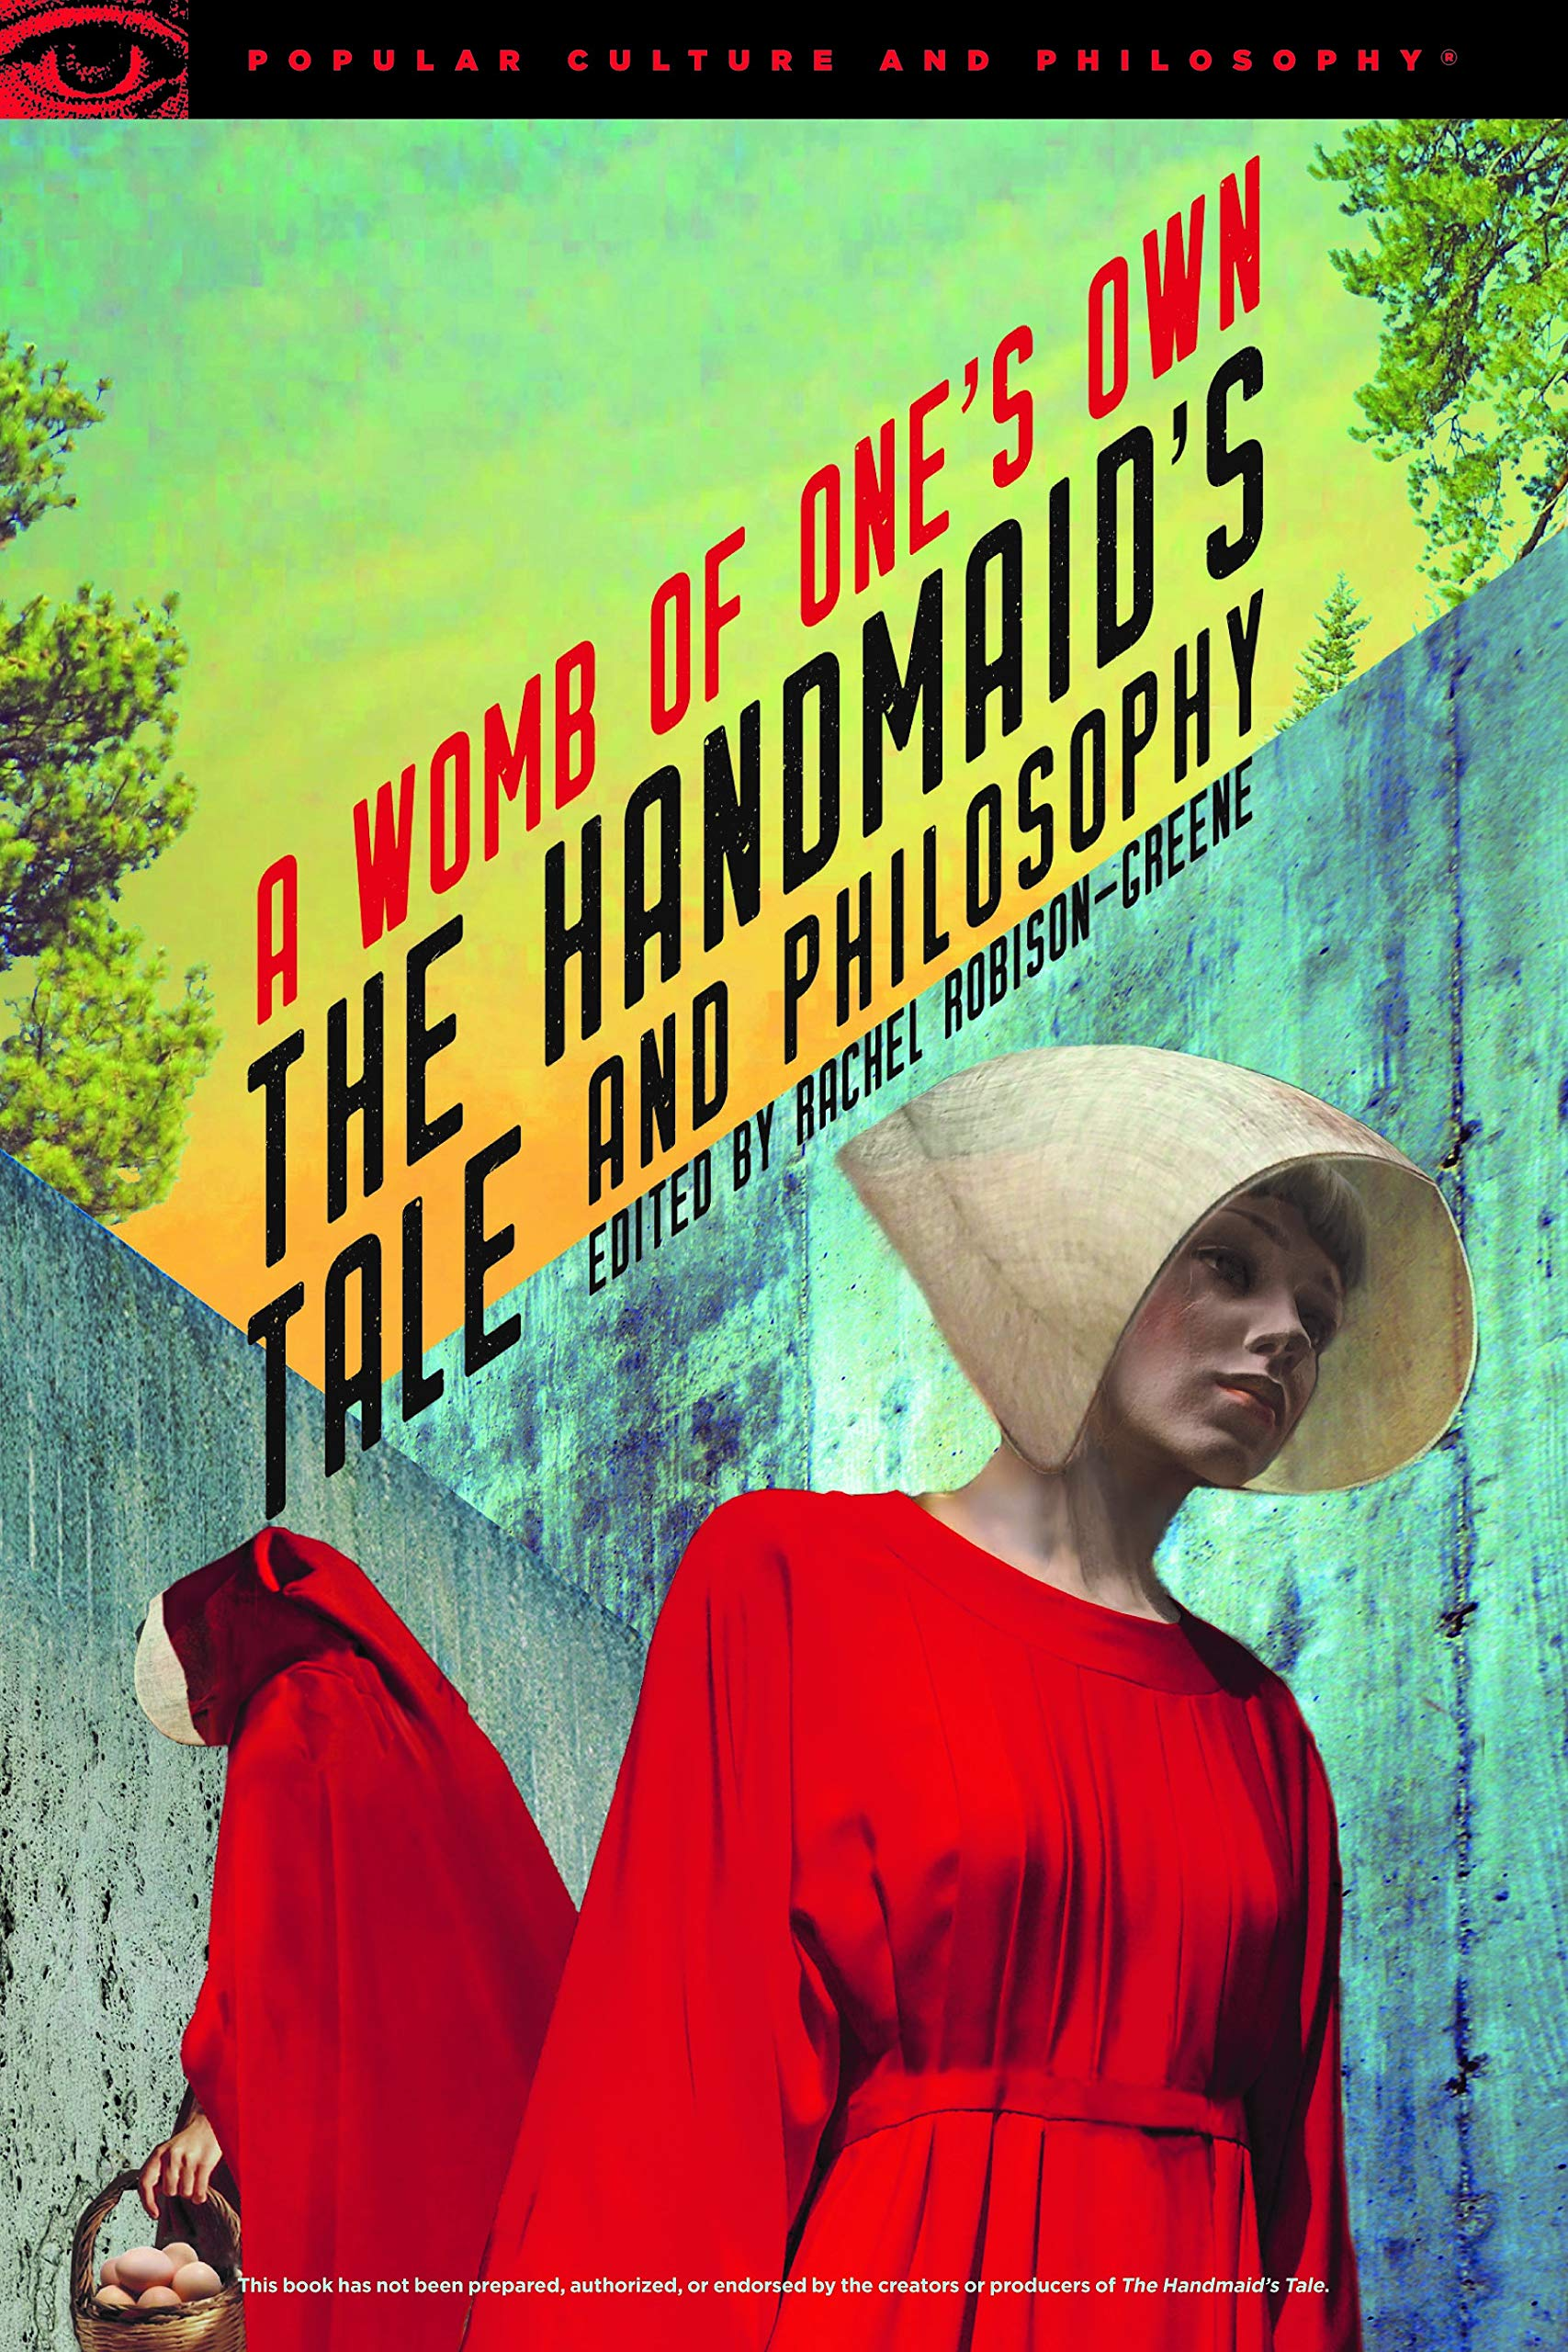 the handmaids tale free download pdf